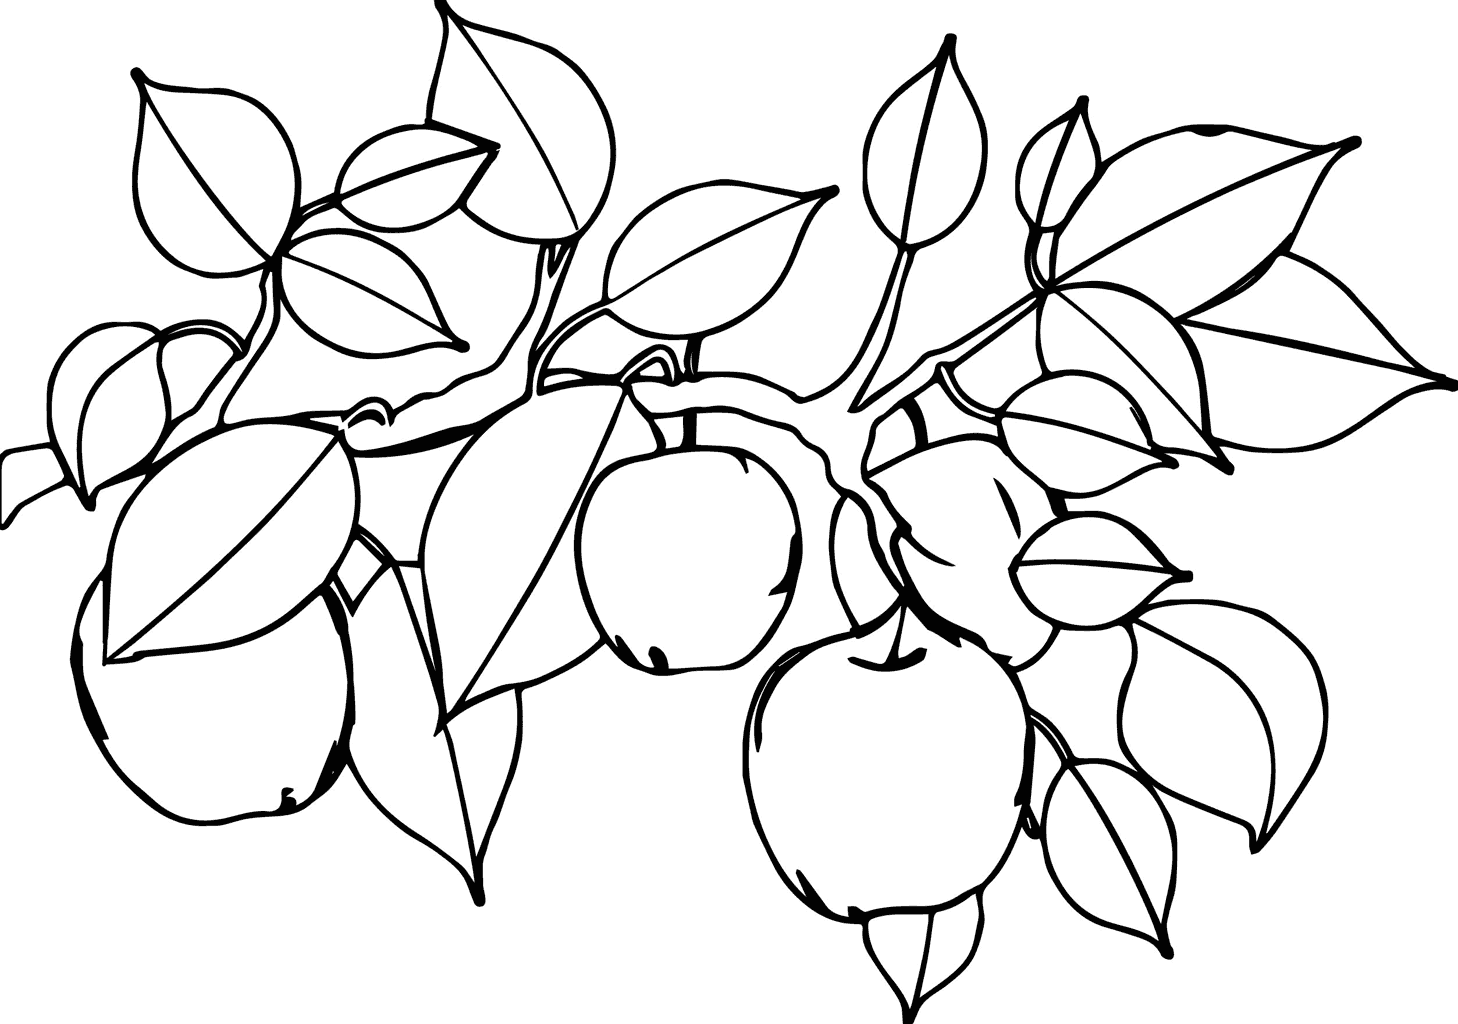 Apples on a Tree Coloring Page